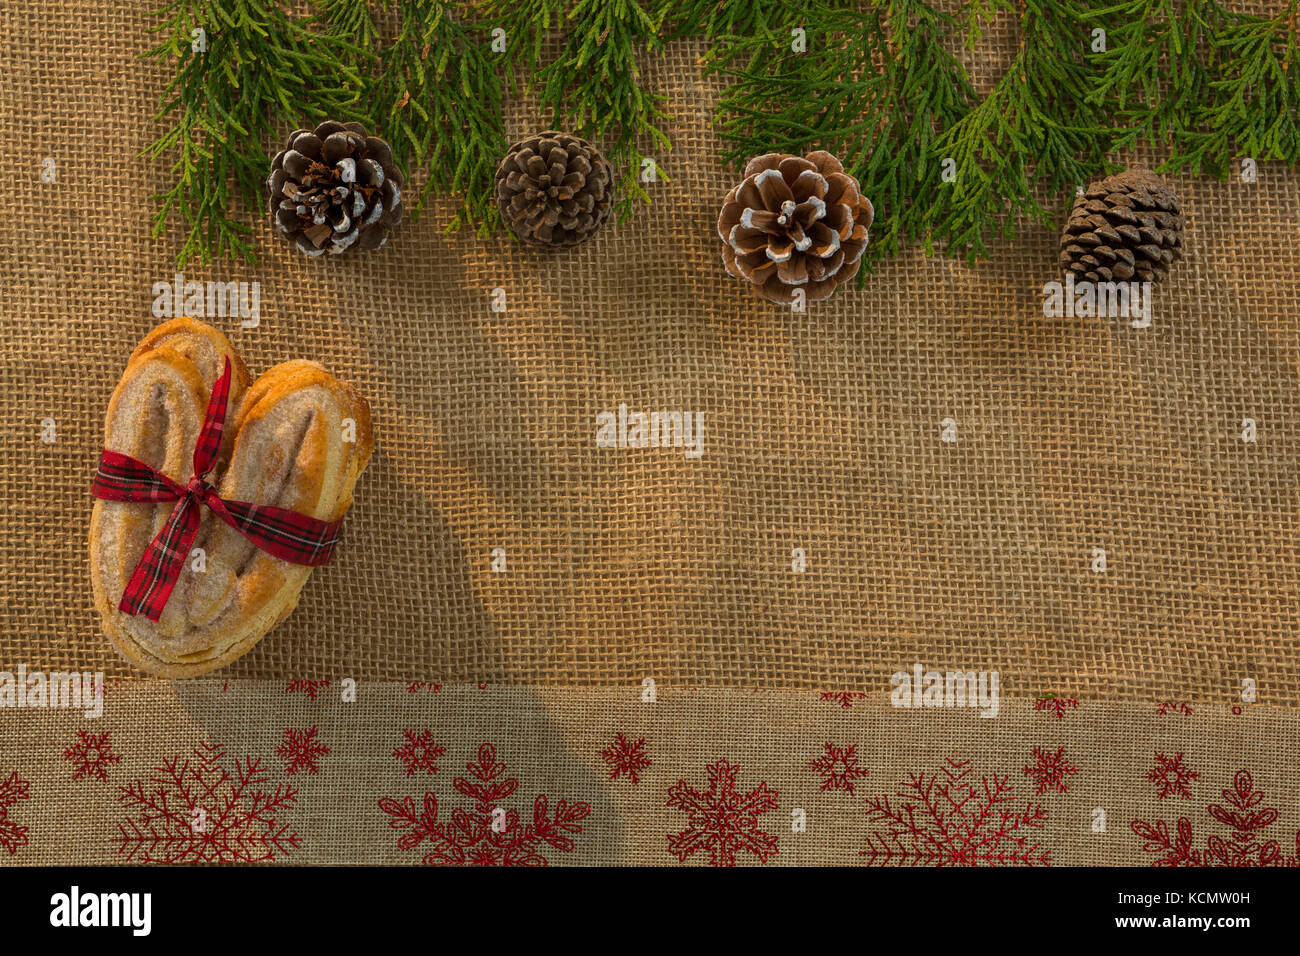 Overhead view of food tied with ribbon by pine cone and twigs on burlap - Stock Image